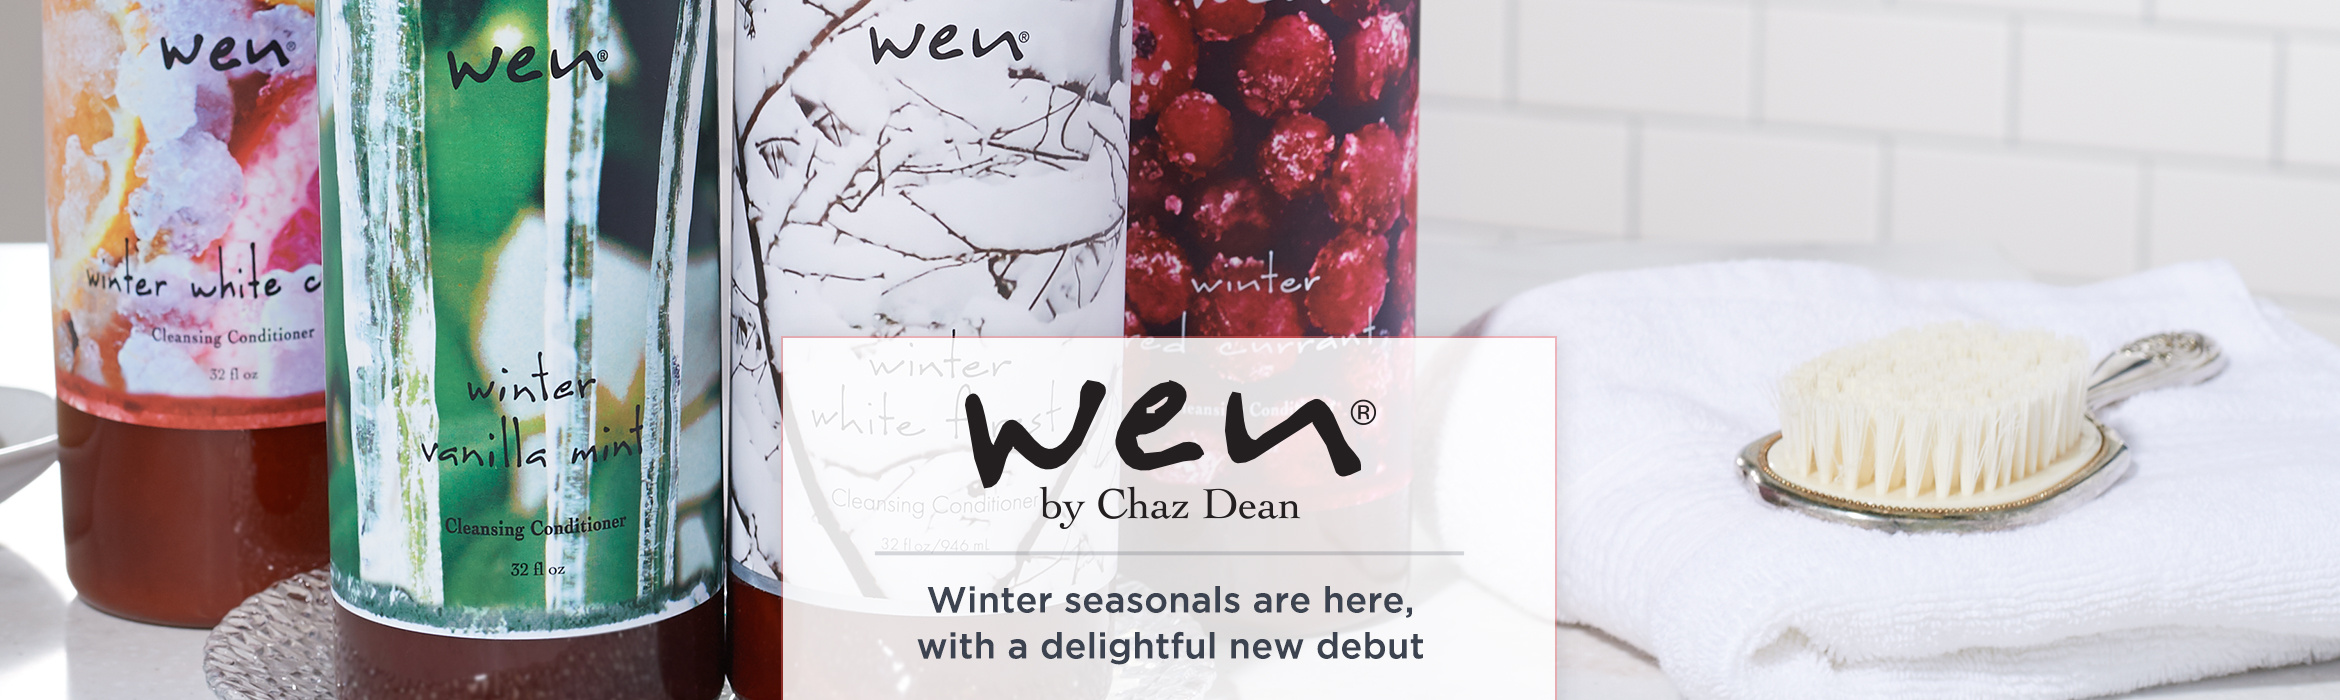 WEN by Chaz Dean - Winter seasonals are here, with a delightful new debut